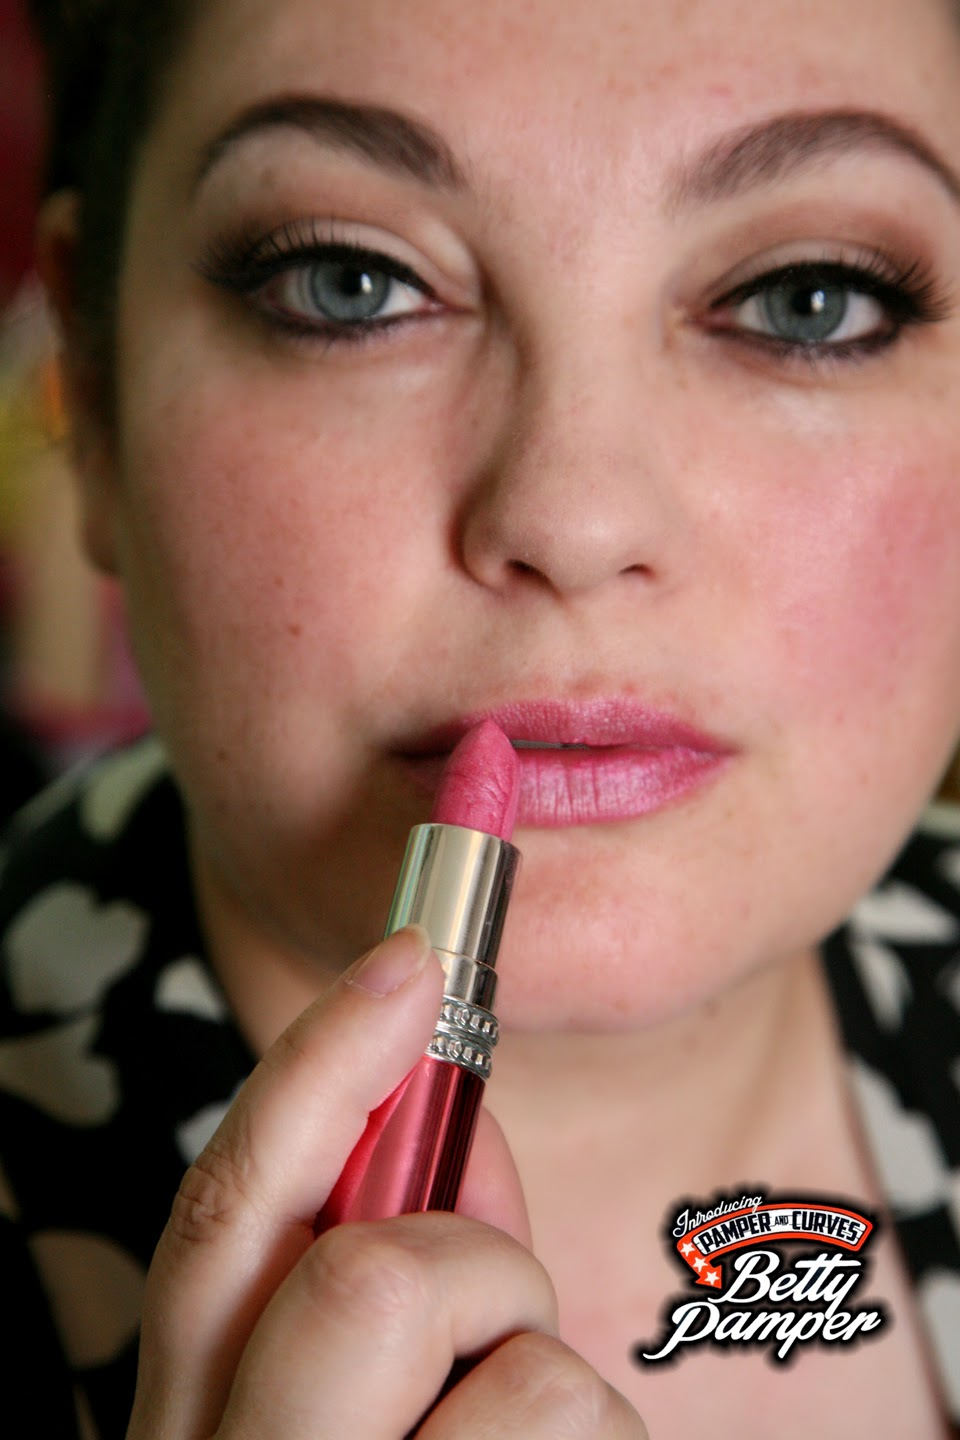 Pucker up pixie vegan lipstick